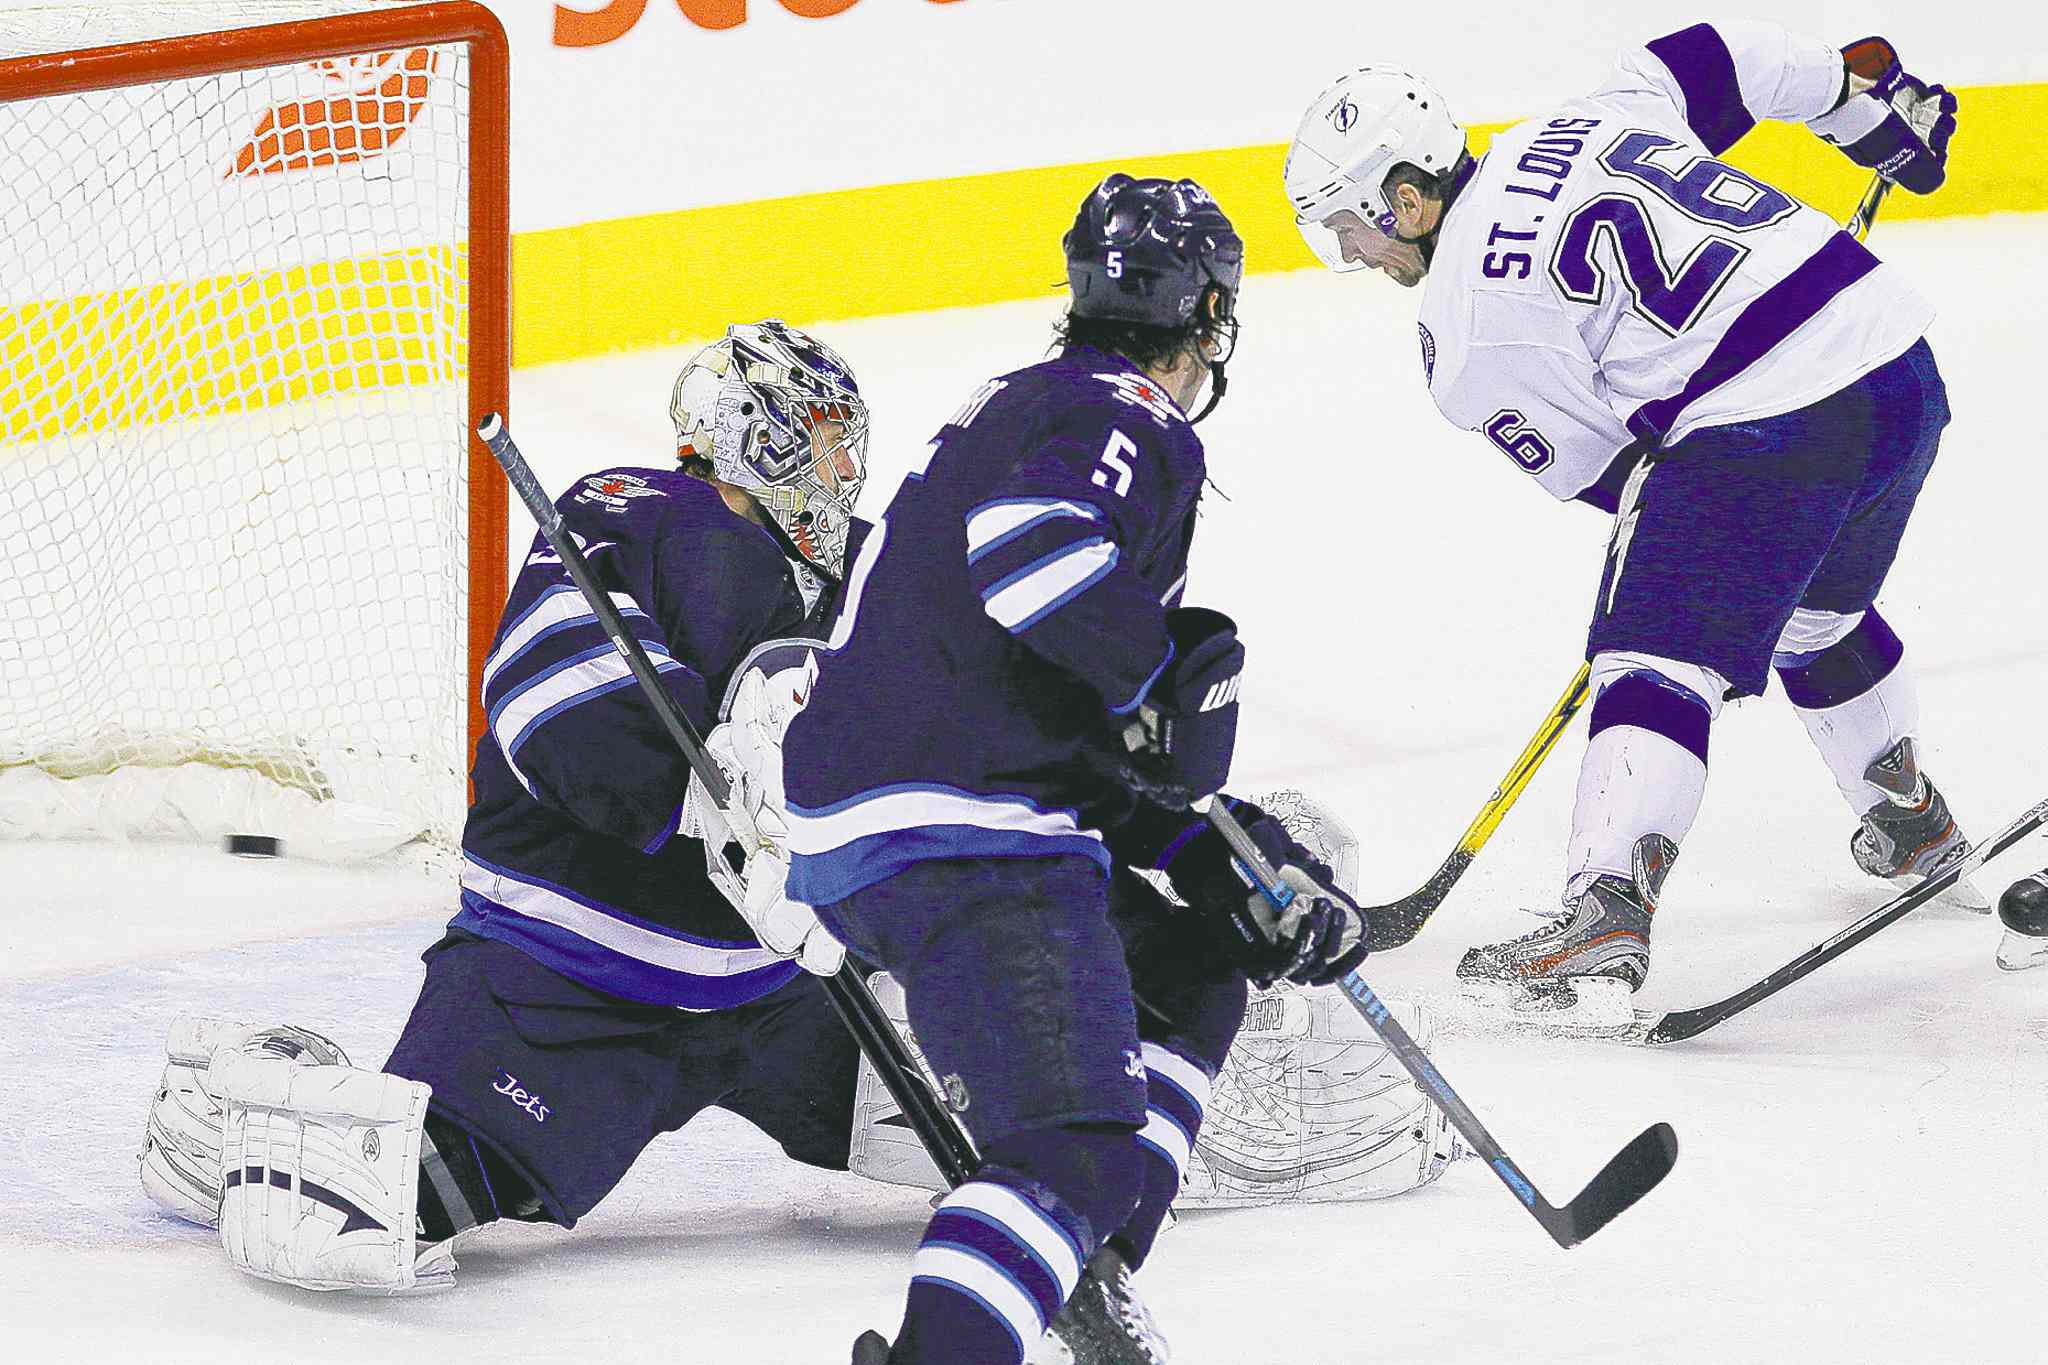 Tampa Bay's Martin St. Louis (26) slipped past the Jets' defence to score the game-winning goal Tuesday night at the MTS Centre.